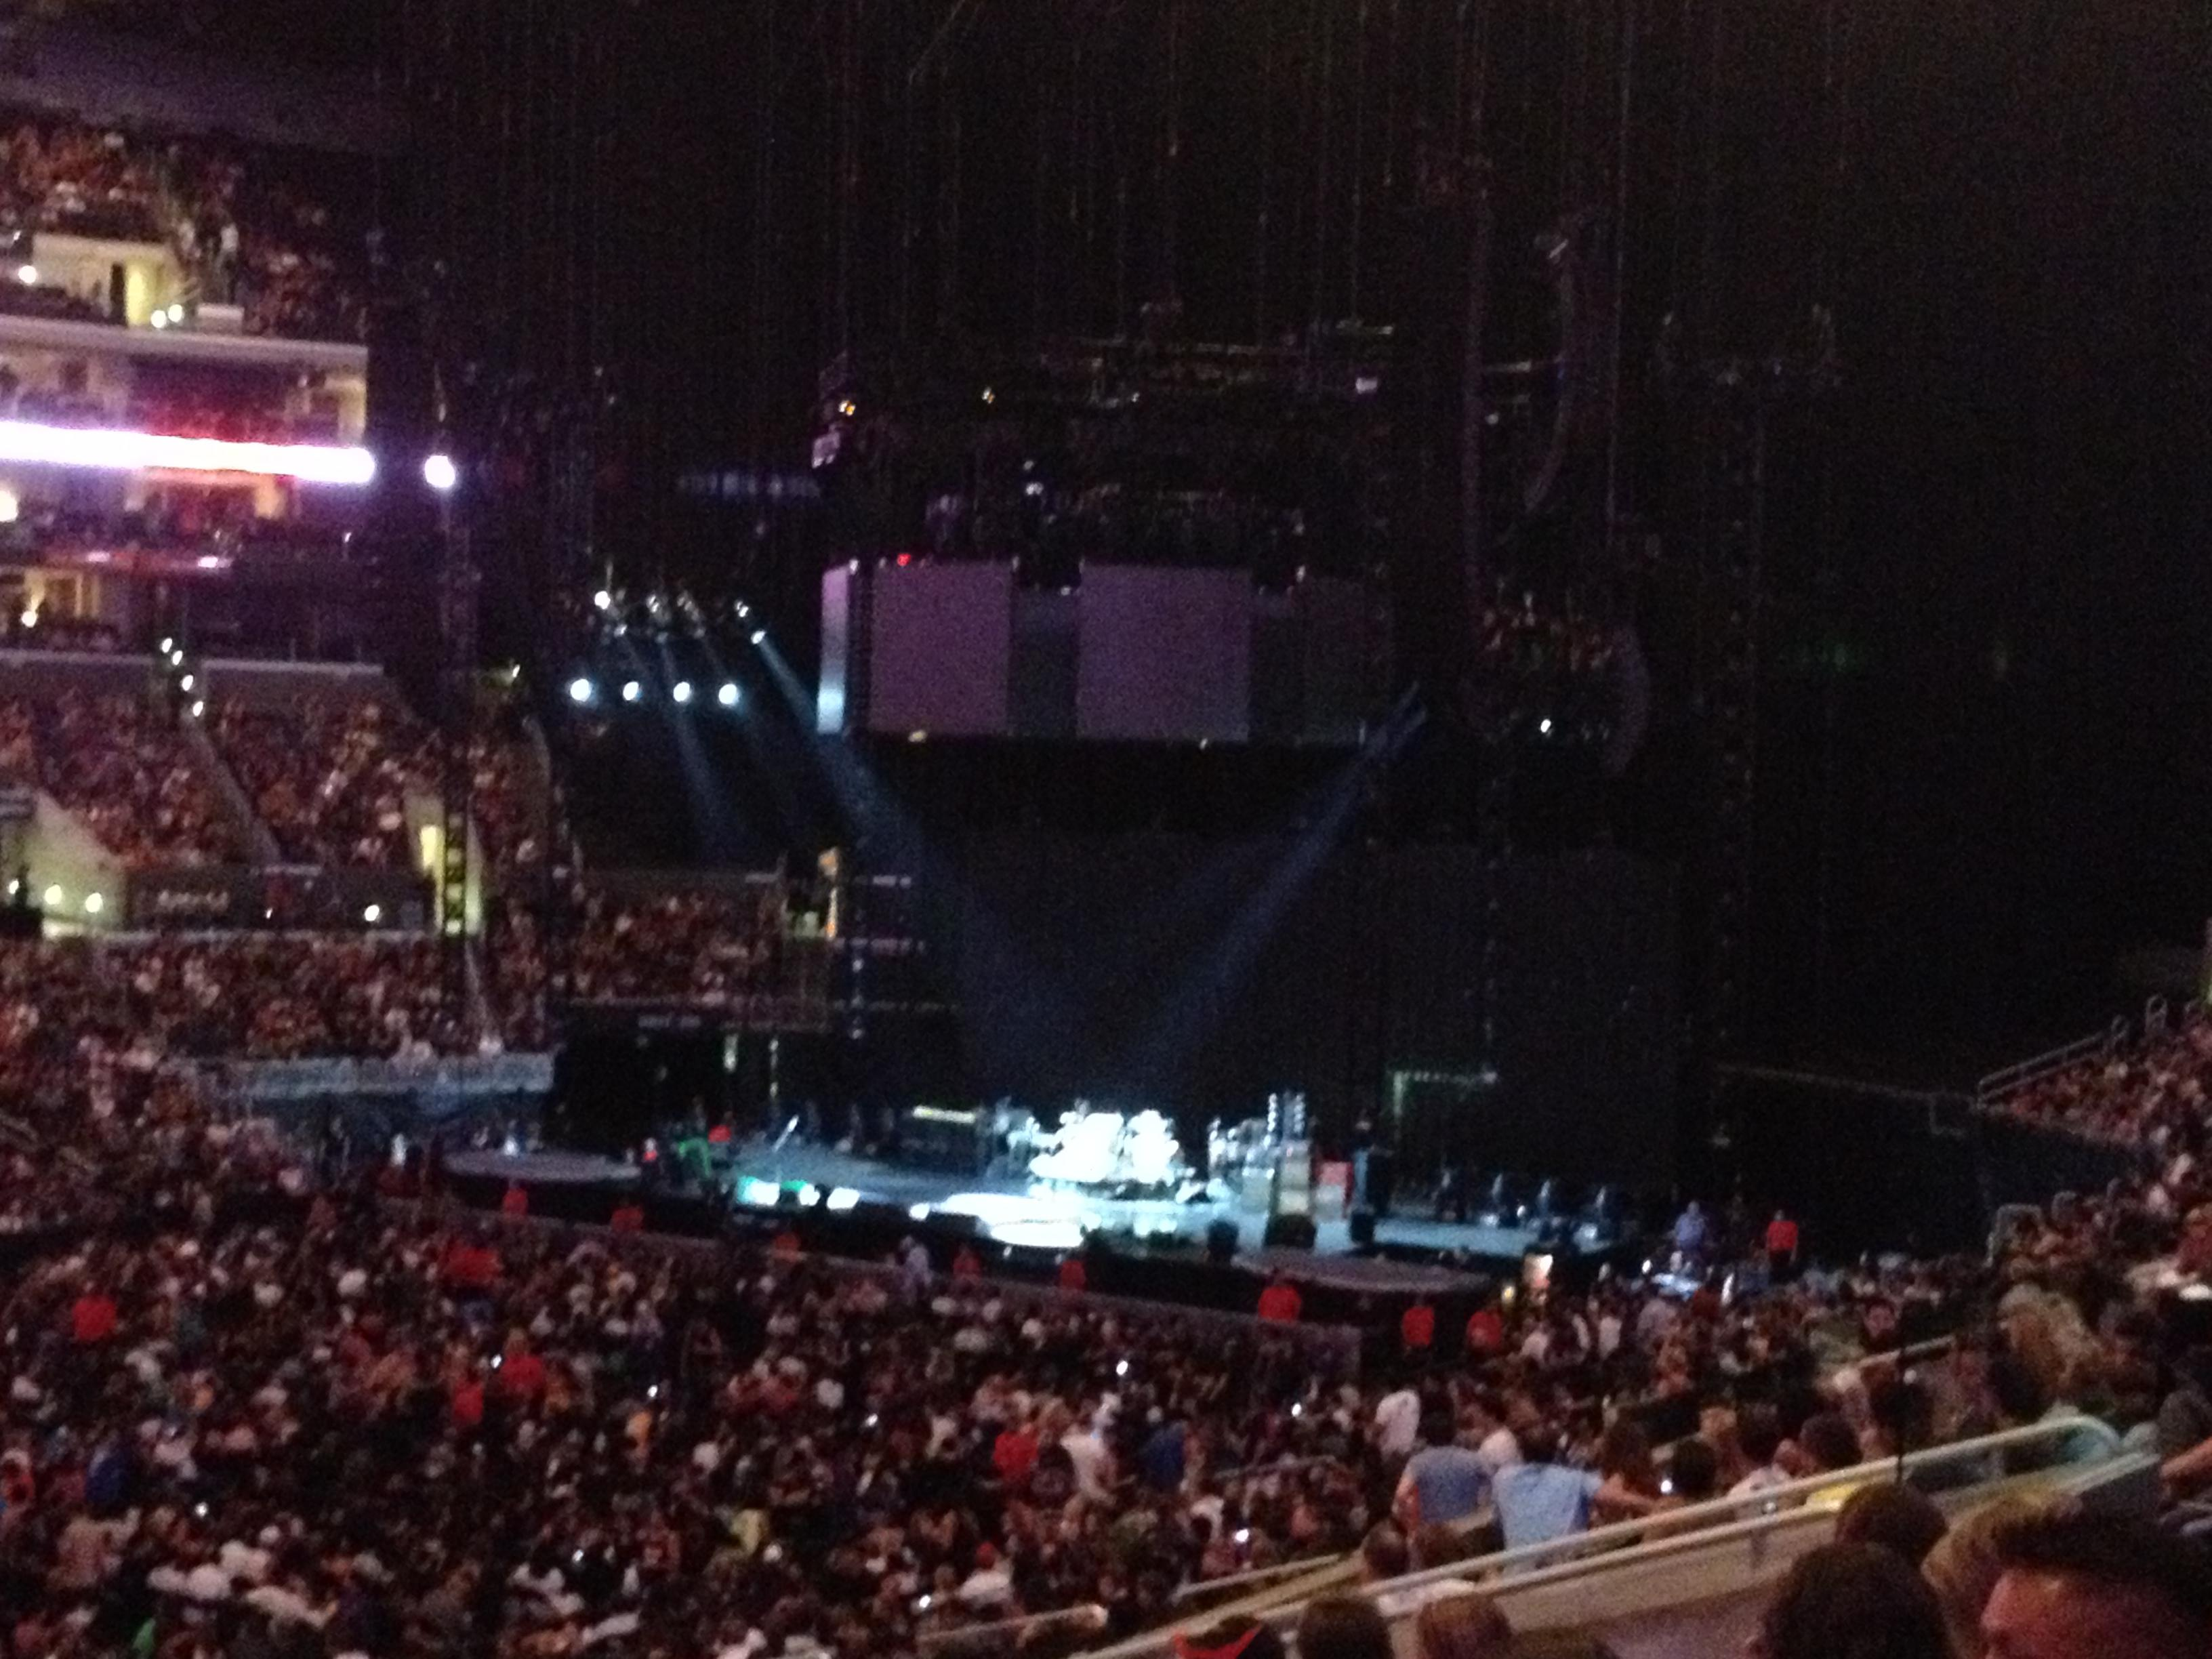 Staples Center Section Pr7 Row 10 Seat 14 Red Hot Chili